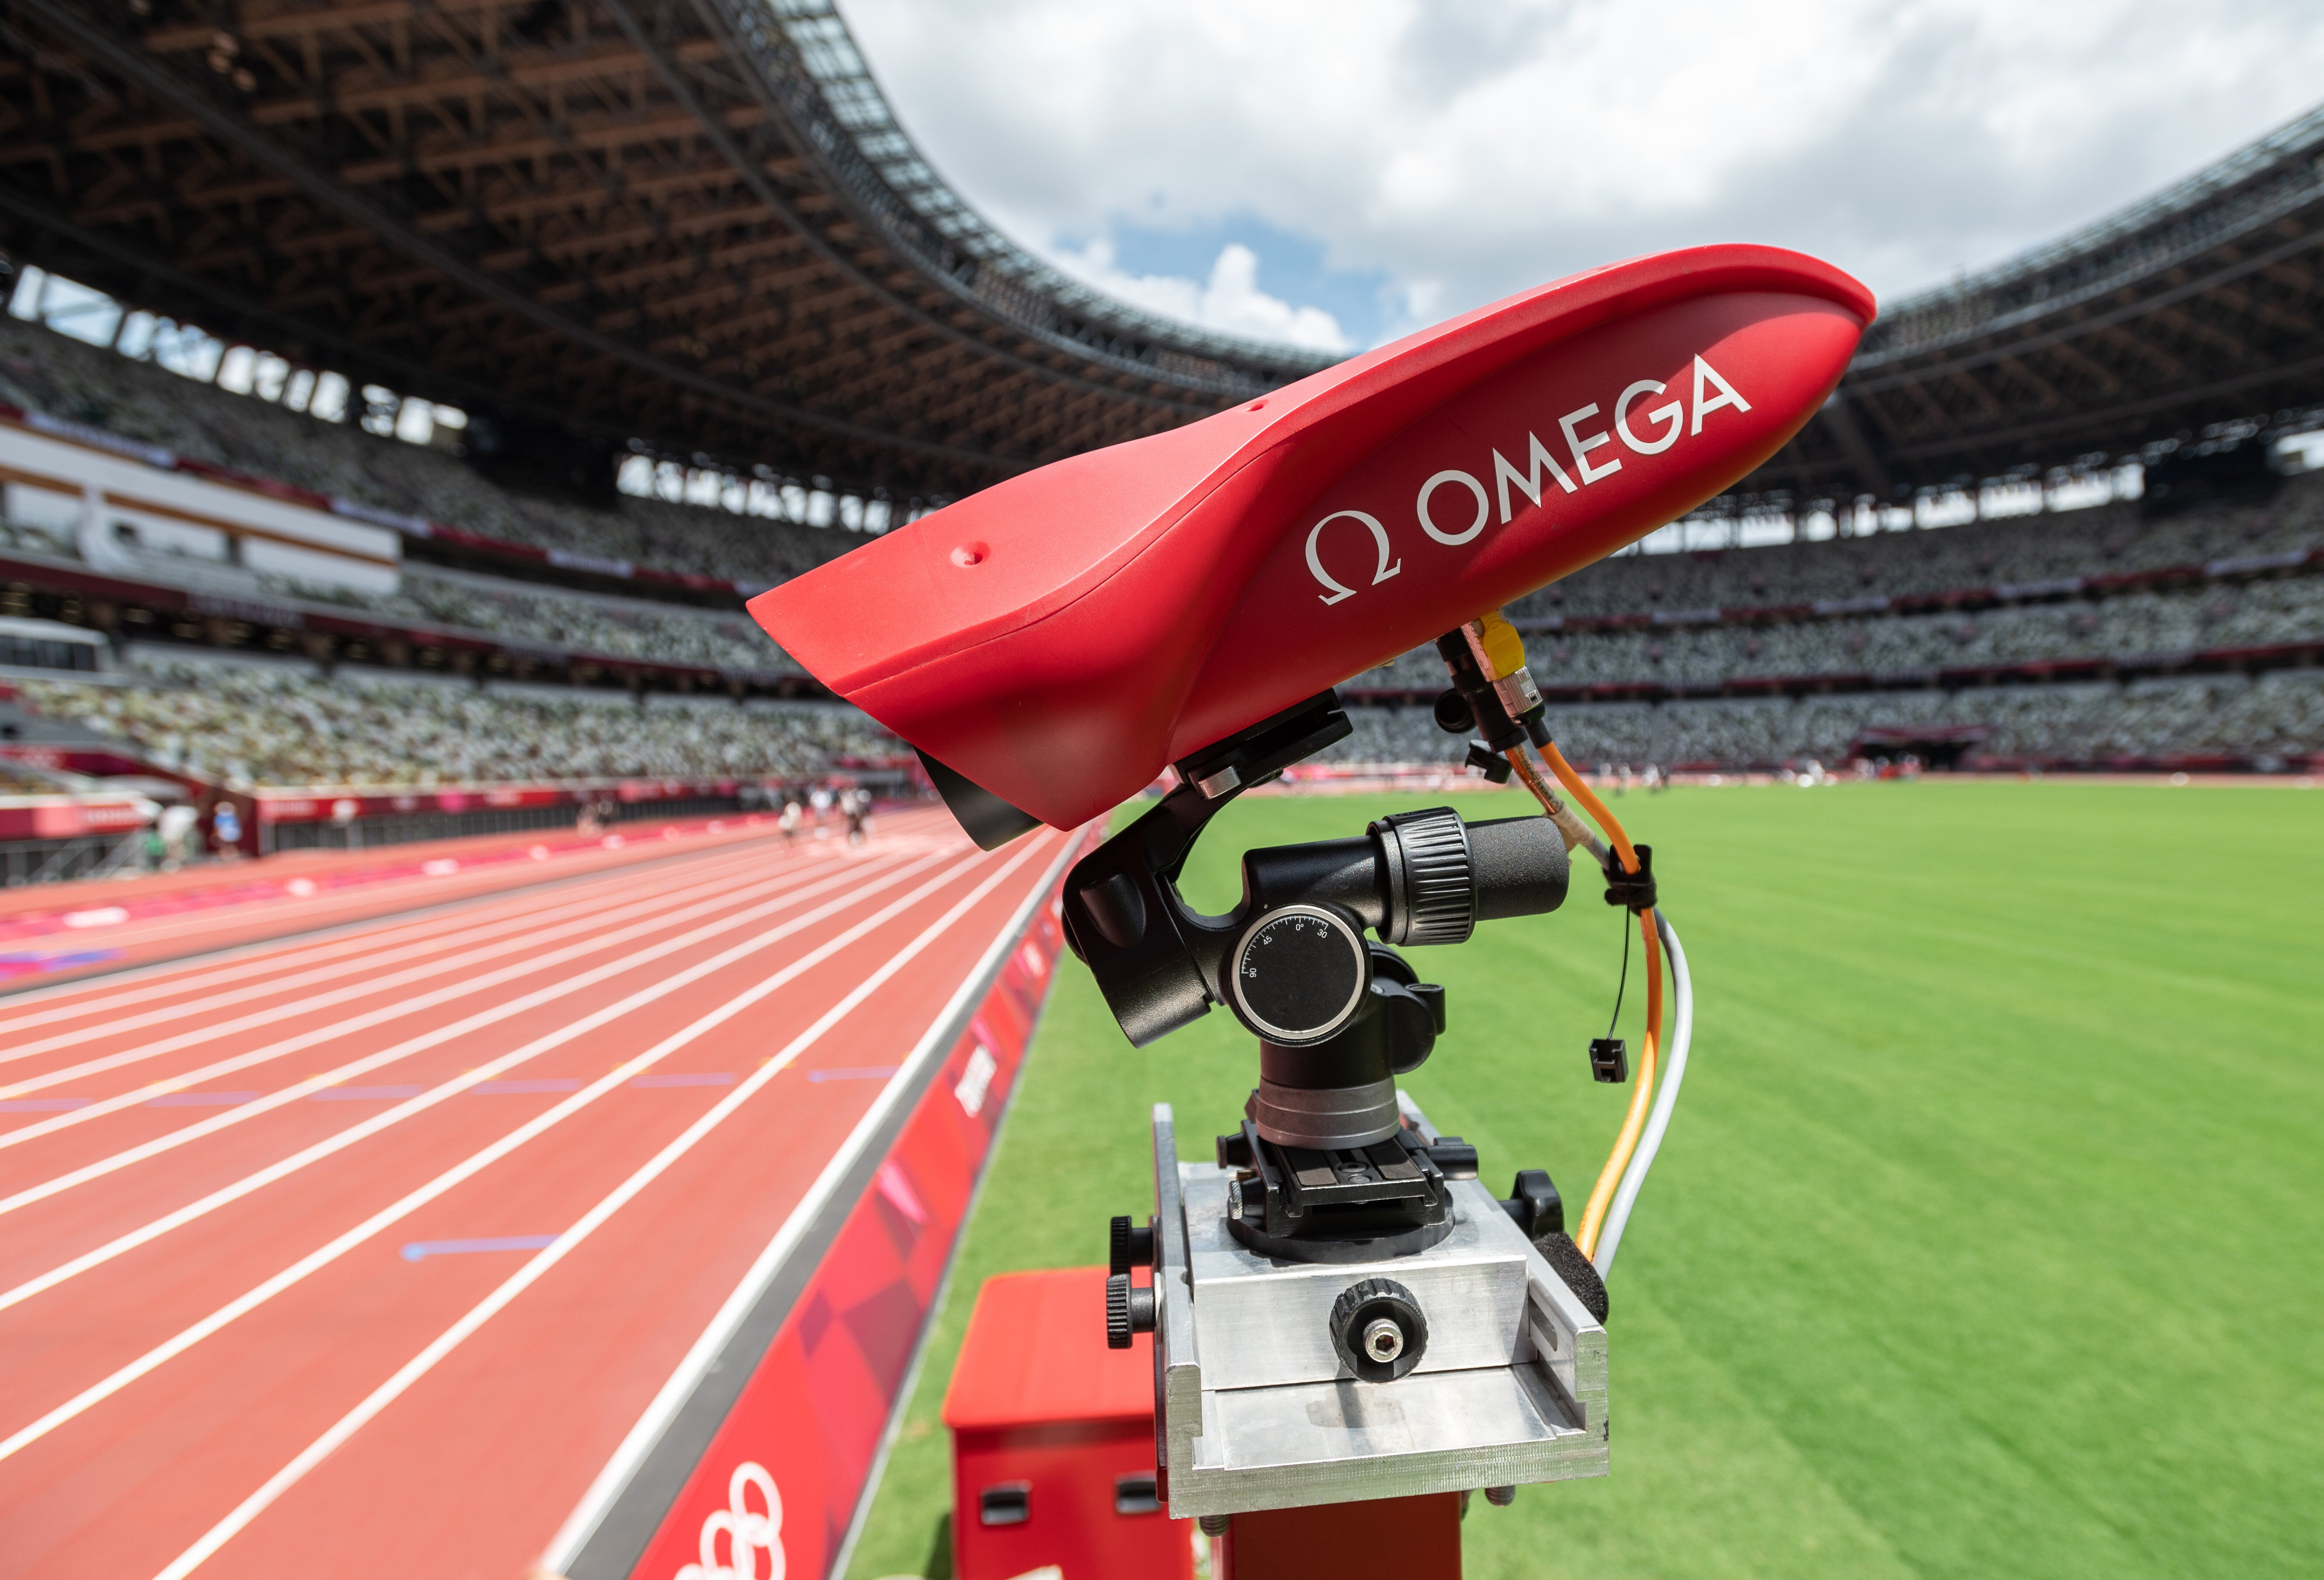 OMEGA times the Tokyo 2020 Paralympic Games